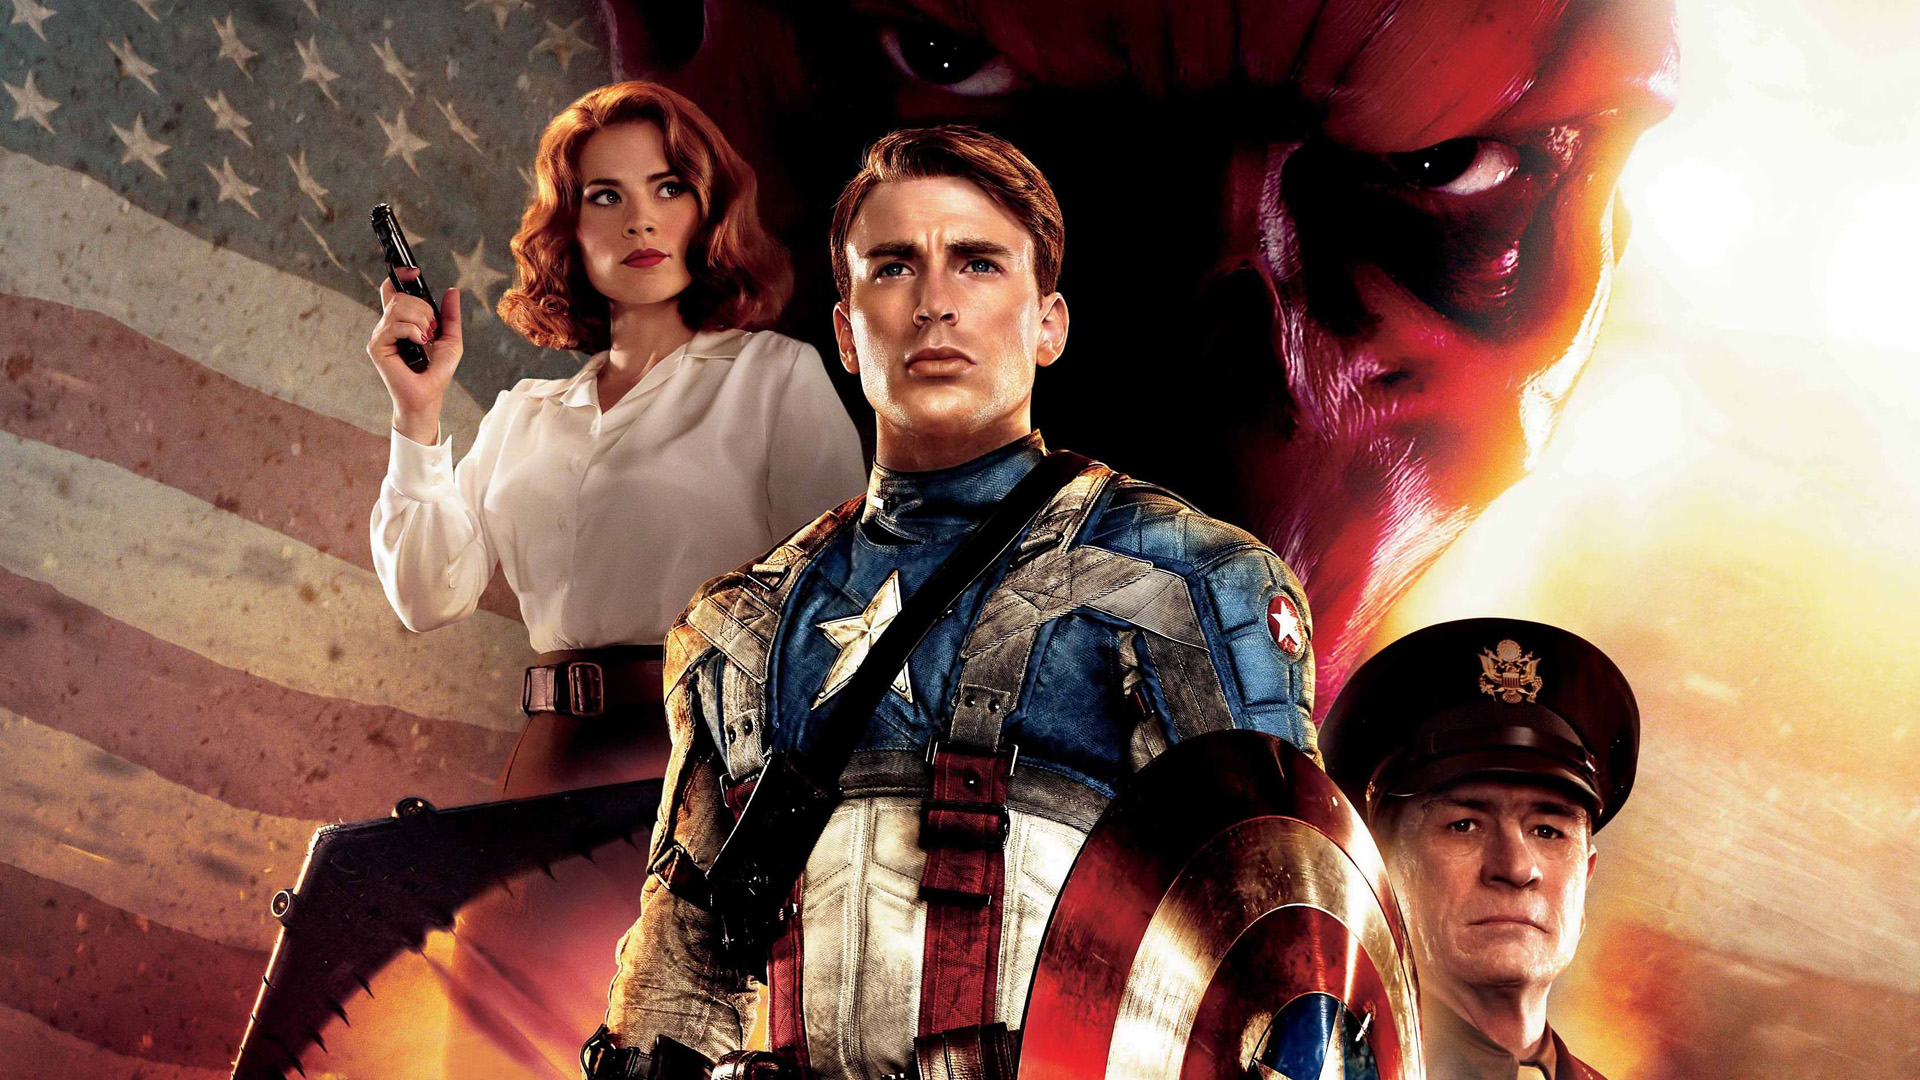 Free Download Captain America The First Avenger Hd Wallpaper